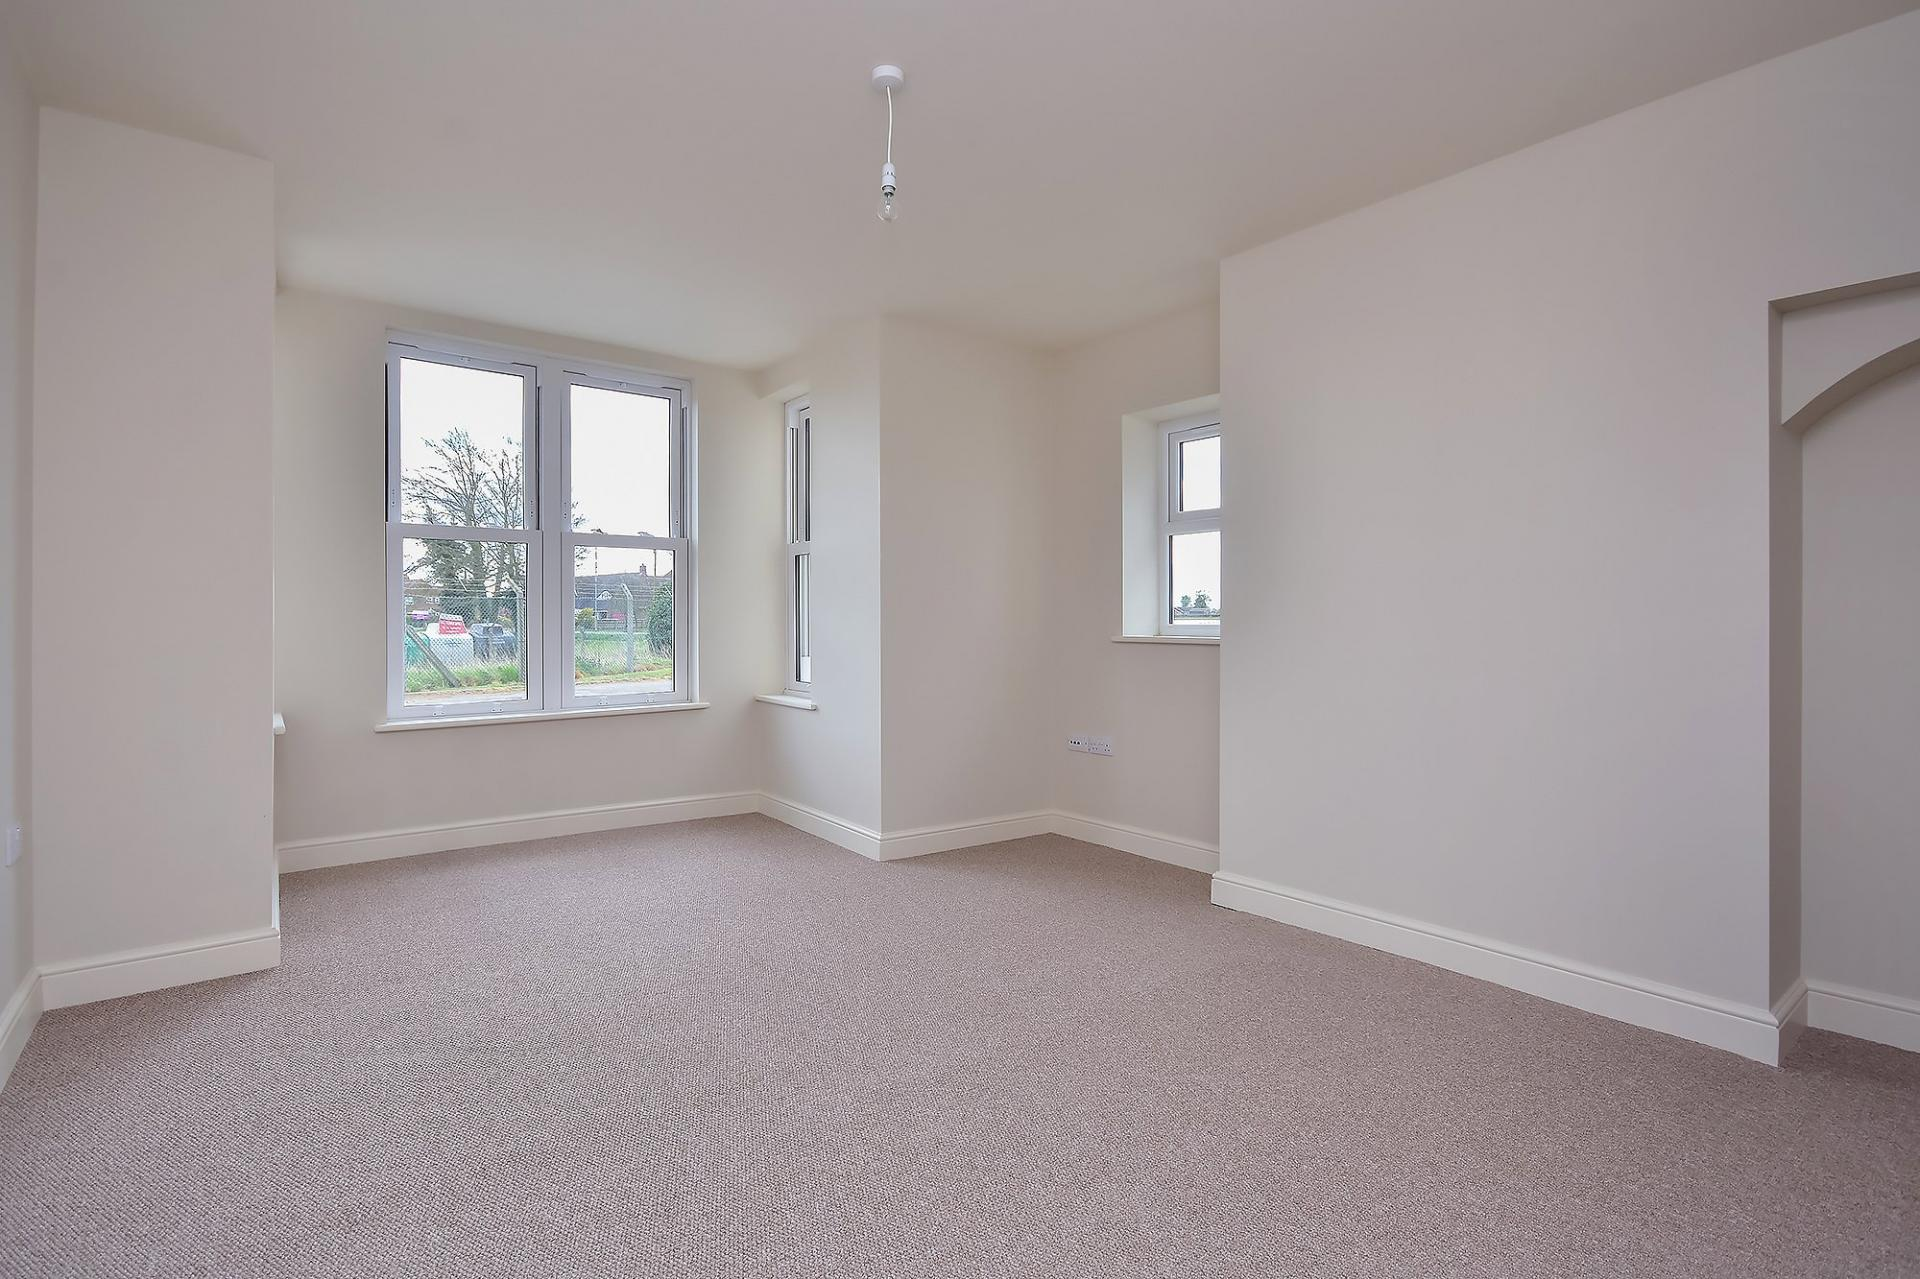 1 bedroom Apartment for sale in Boston